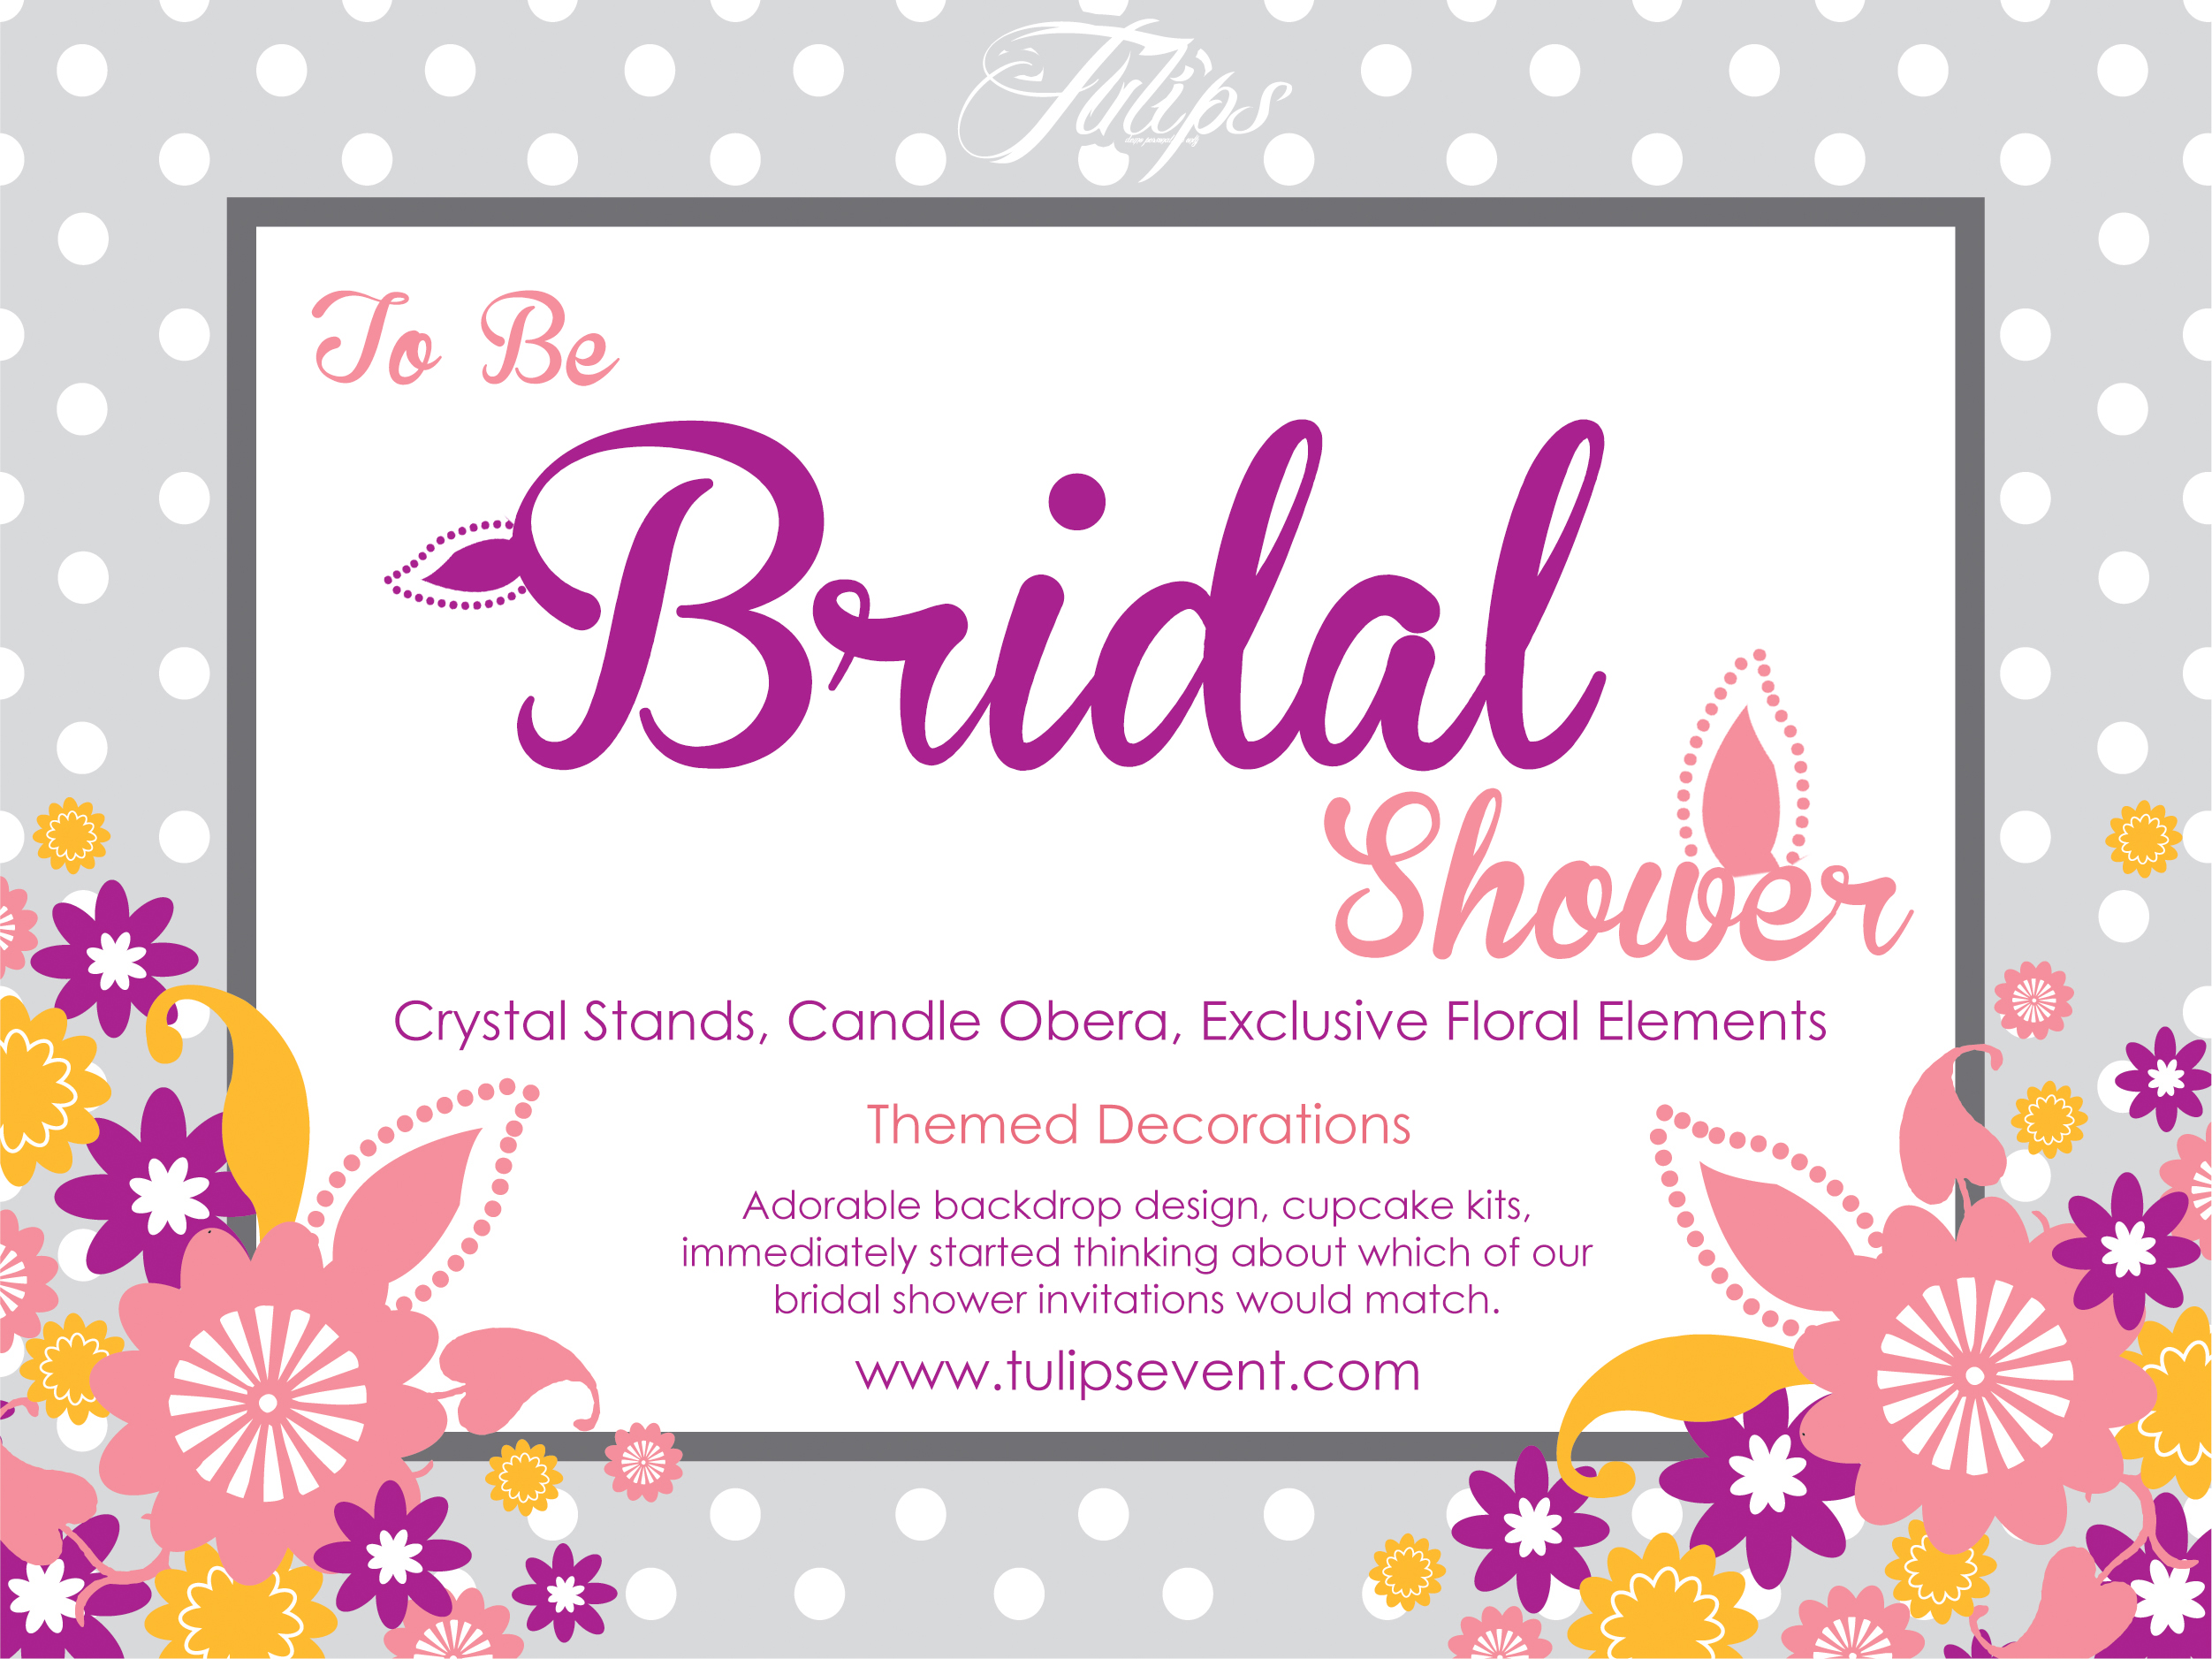 sweet bridal shower theme planning ideas in lahore pakistan